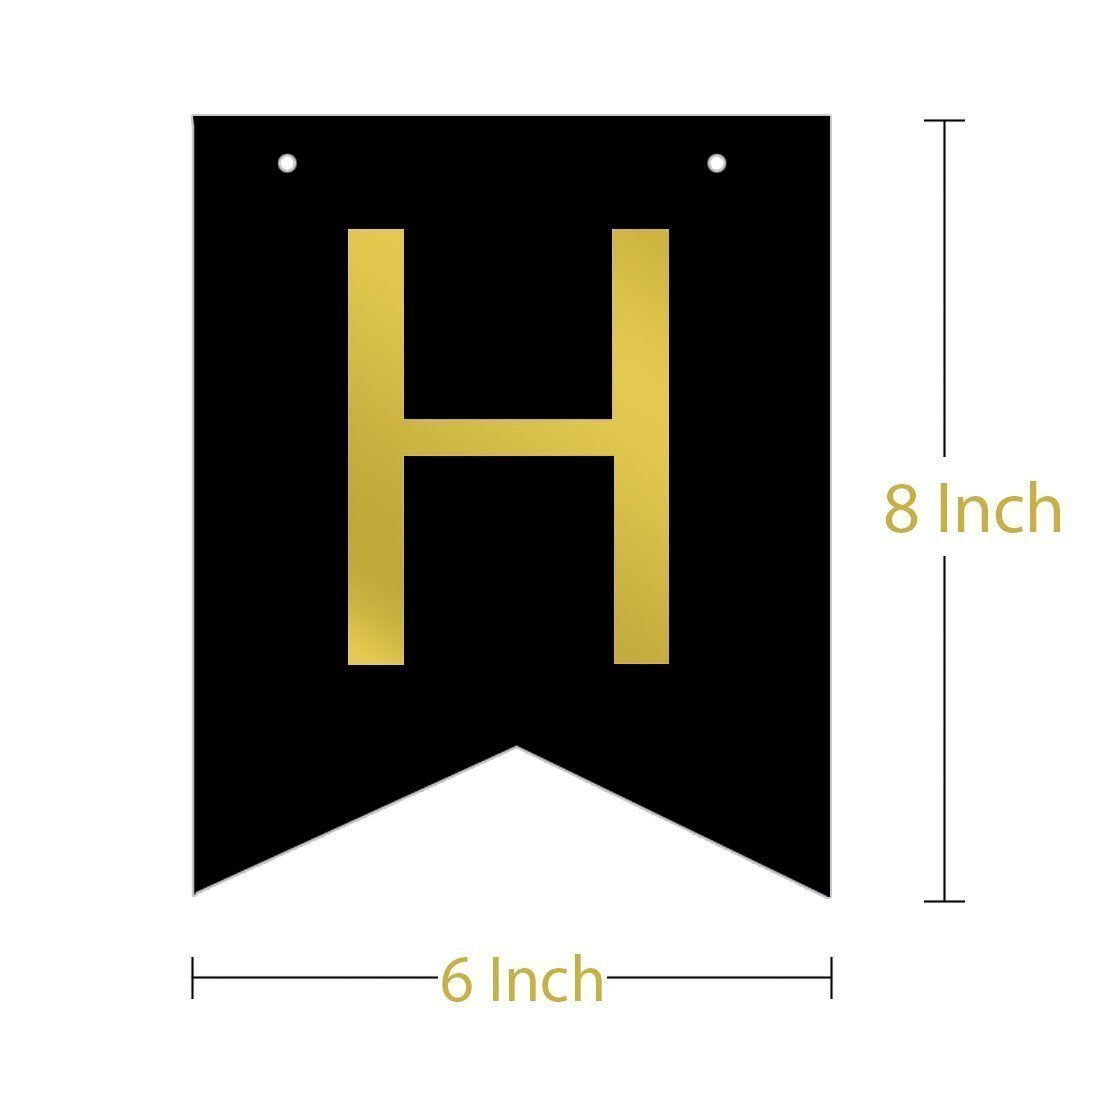 Number 40 40th BIRTHDAY DECORATIONS BALLOONS BANNER 40th Gold Number Balloons,Gold and Black Happy Birthday Black Banner Perfect 40 Years Old Party Supplies,Free Bday Printable Checklist